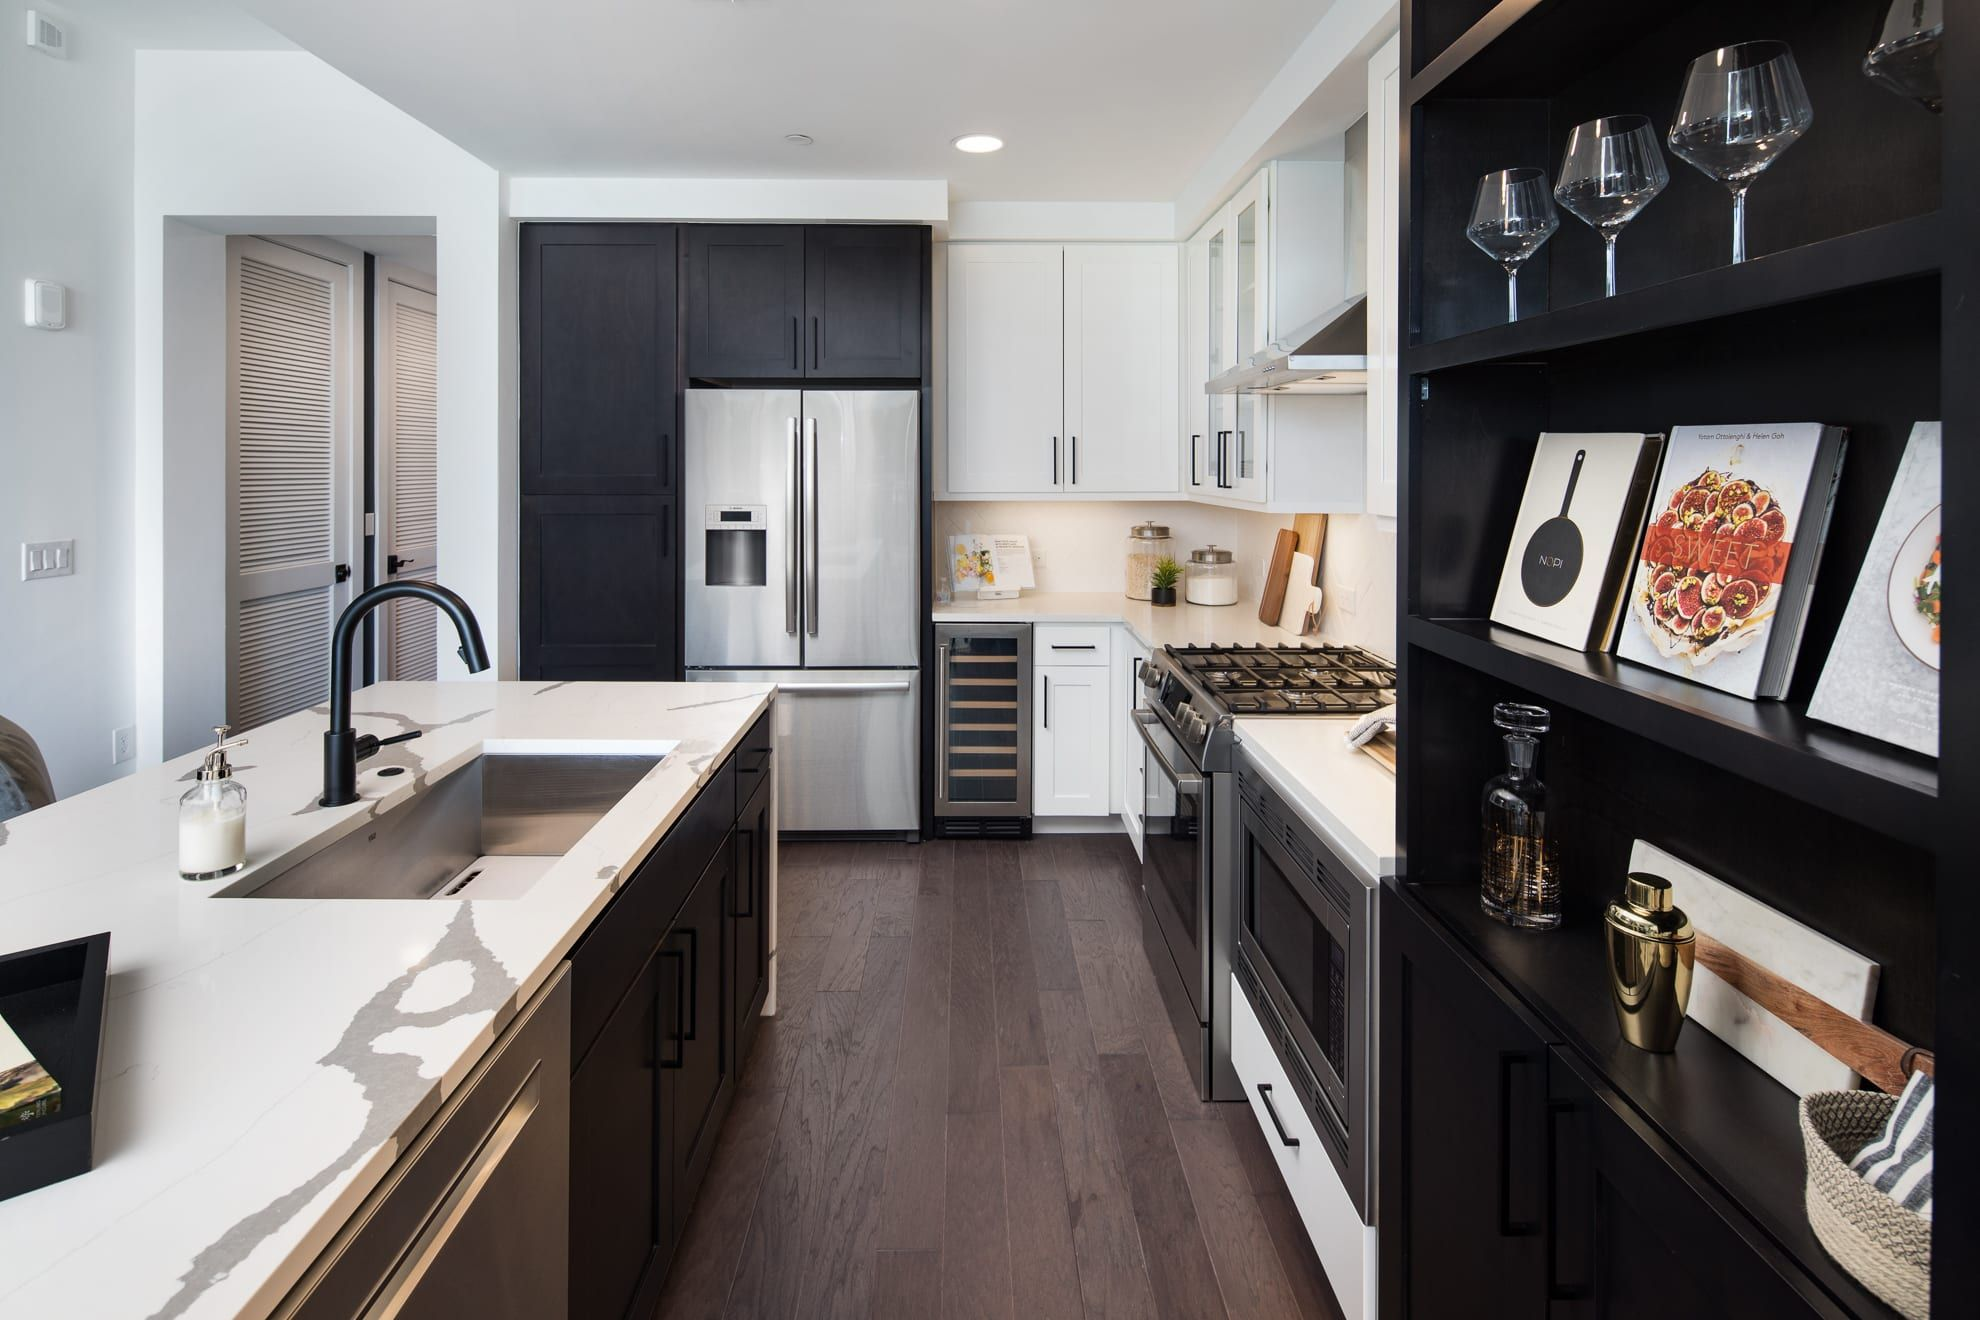 Can You Get An Apartment At 18 In Georgia Luxury Apartments In Buckhead Atlanta Atlanta Apartments Luxury Apartments Apartment Layout